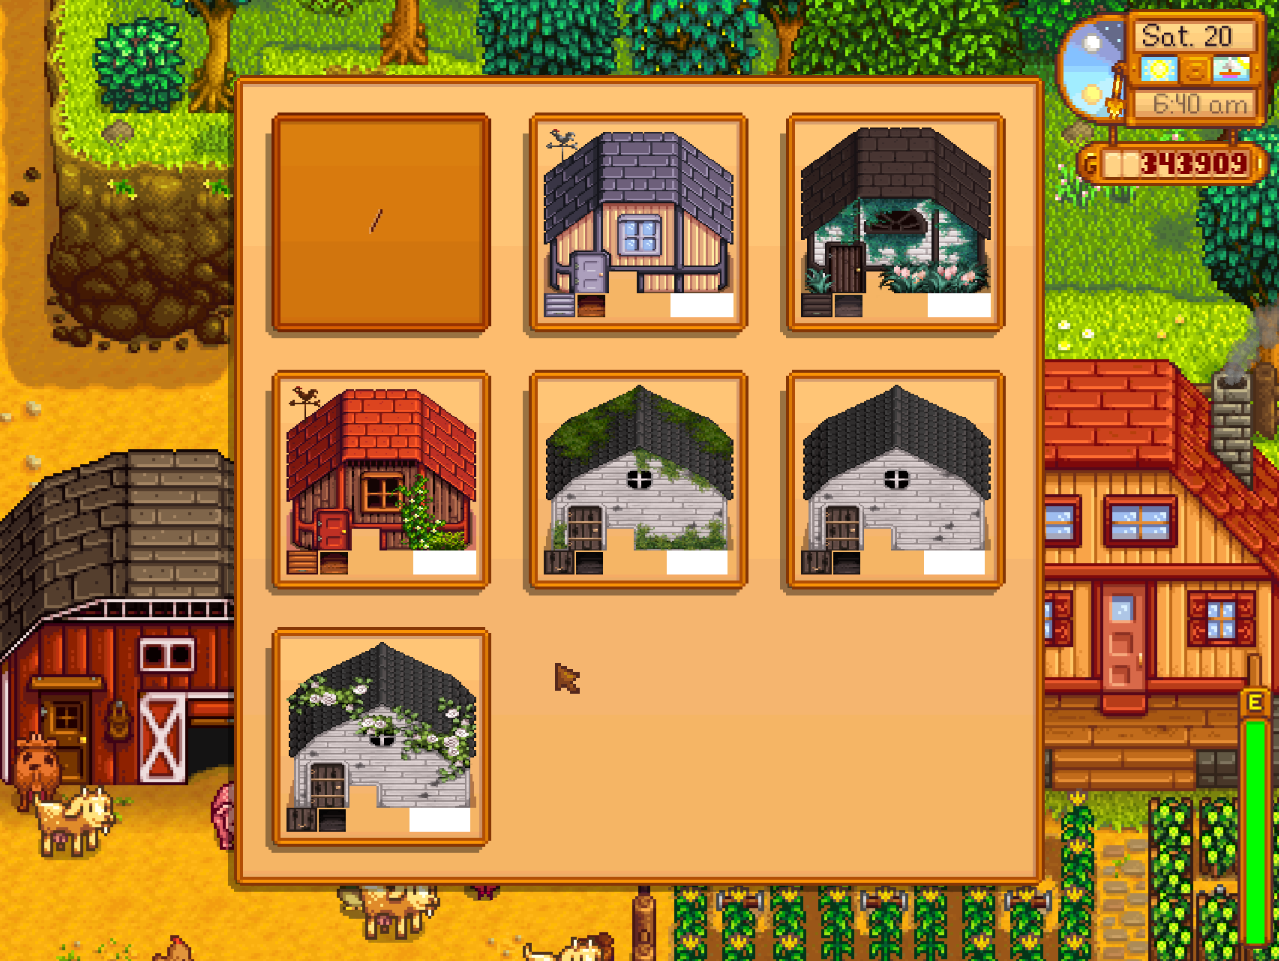 House design stardew valley - Customize Exterior At Stardew Valley Nexus Mods And Community